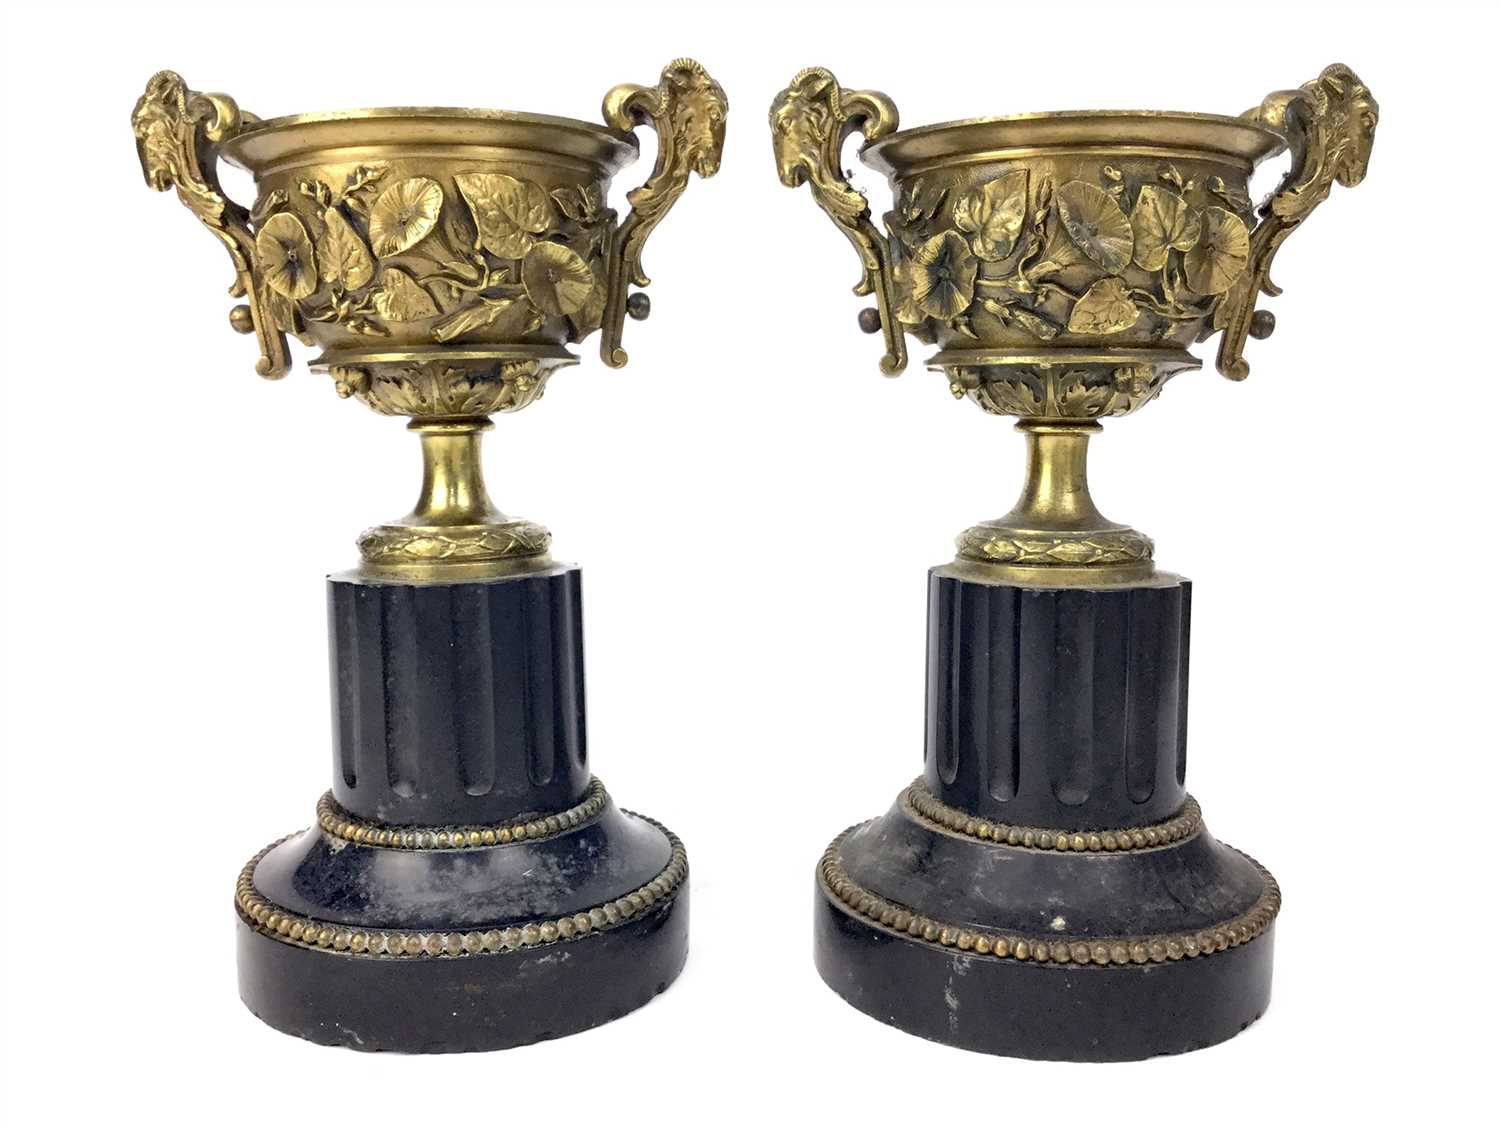 Lot 801-A PAIR OF LATE 19TH CENTURY GARNITURES